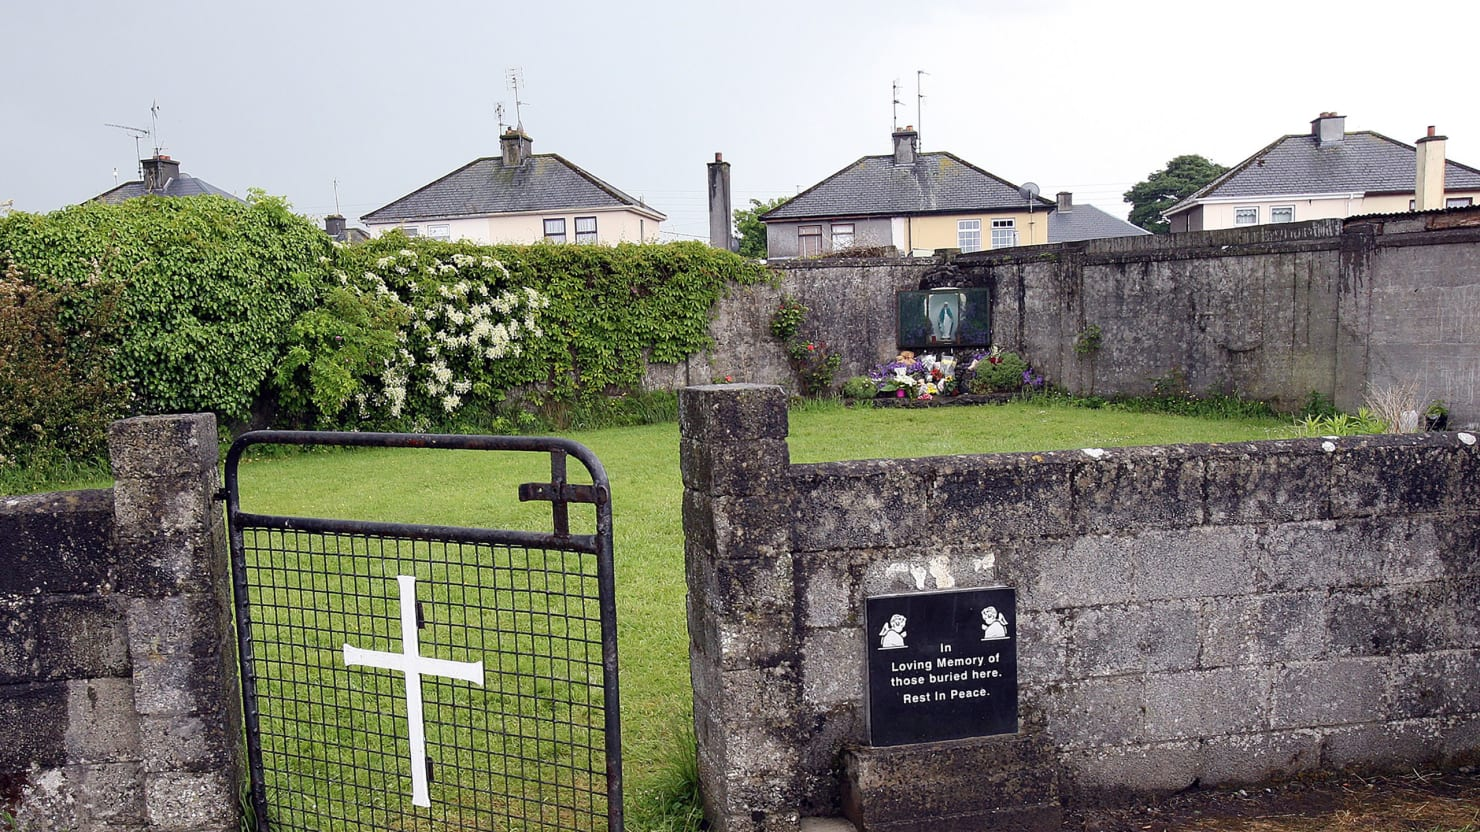 The amateur historian who uncovered irelands mass grave of babies the dogged effort of a determined historian in a small irish town uncovered one of the greatest tragedies in modern irish history aiddatafo Image collections